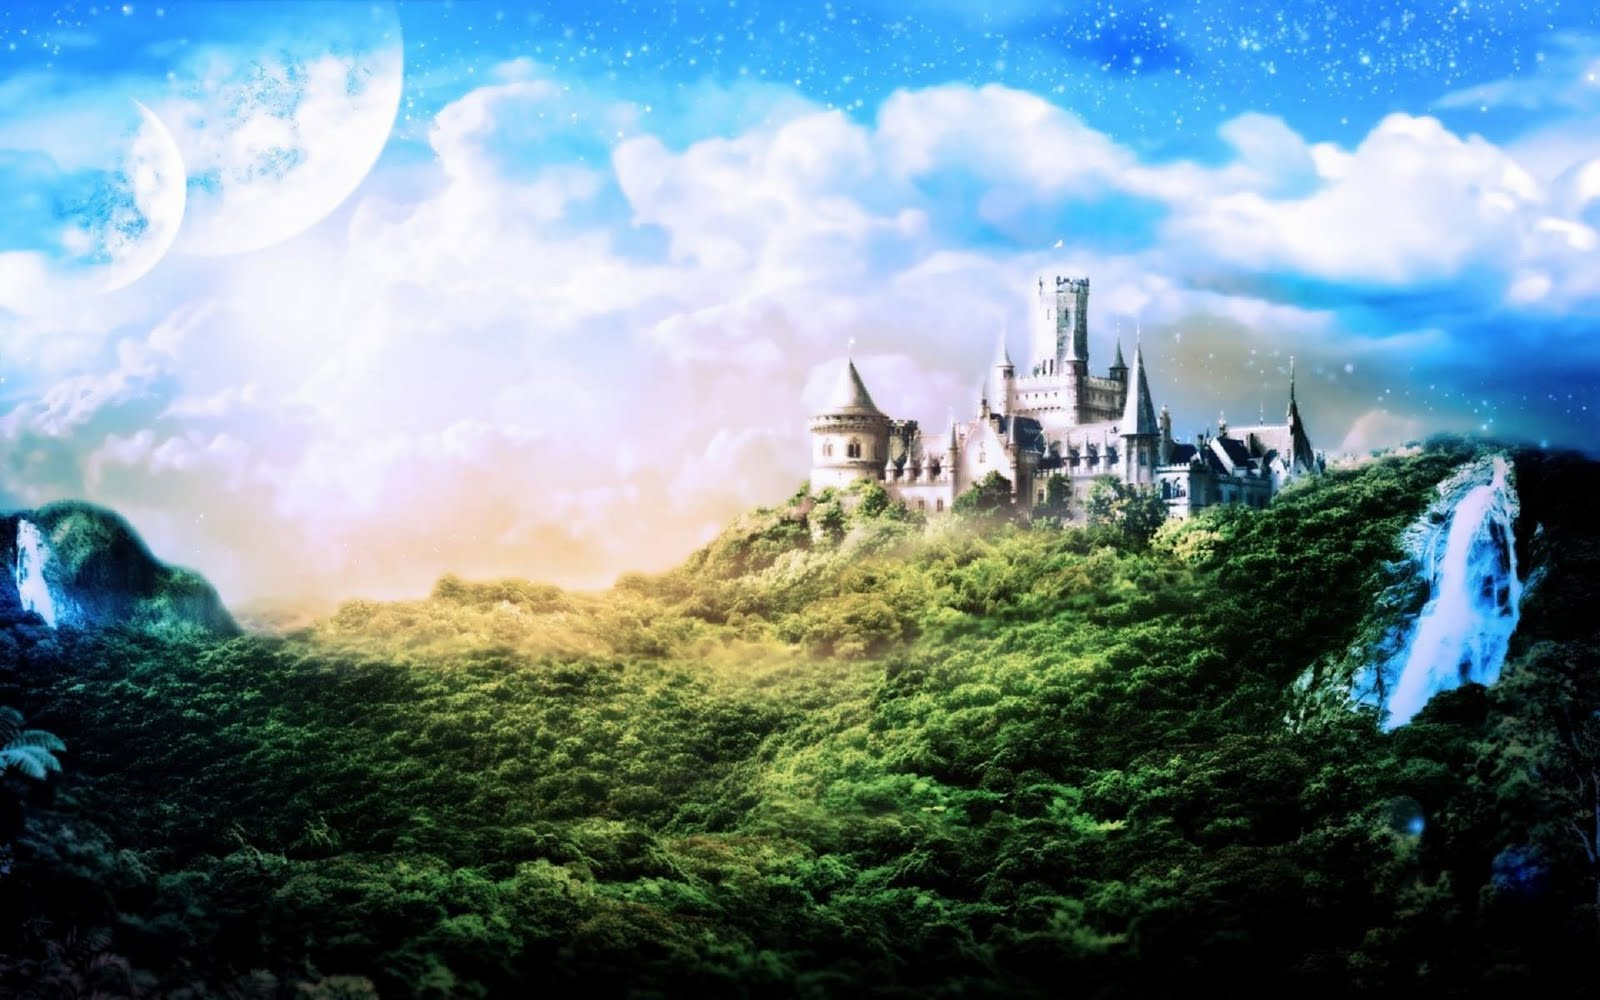 dream castle hq wallpaper dream tree sky wallpaper 1600x1200 dream 1600x1000